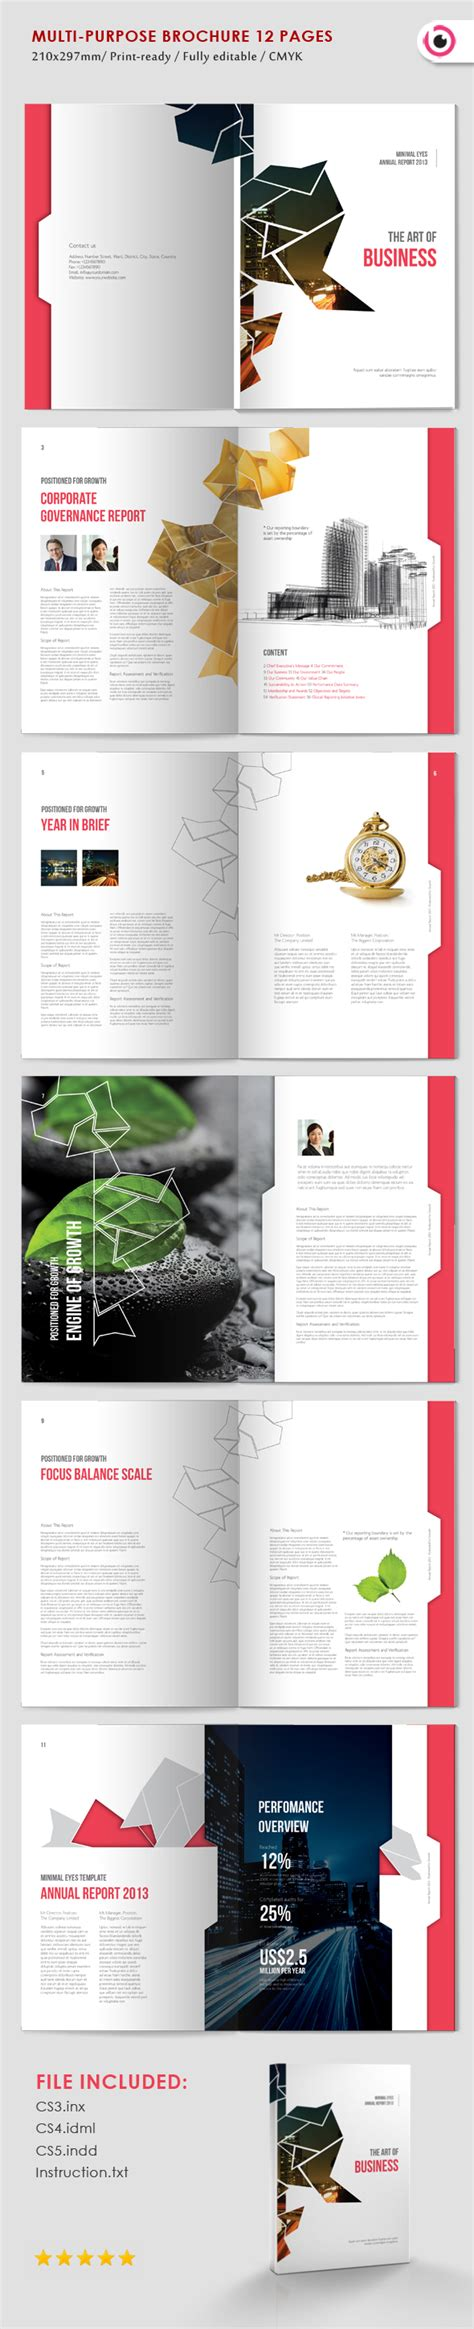 multi page brochure template the of business on behance